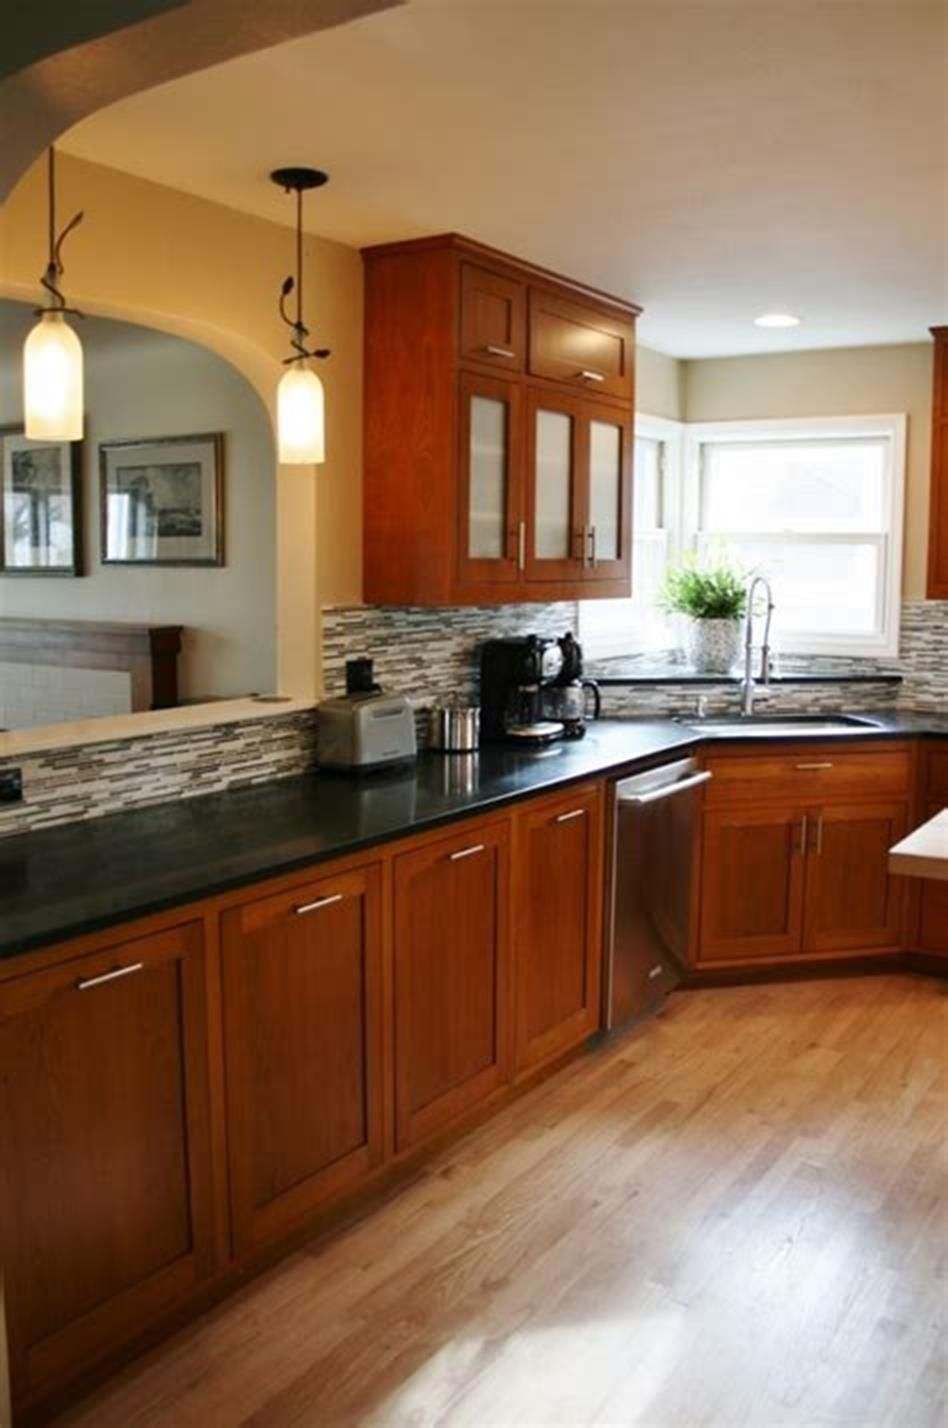 46 Most Popular Kitchen Color Schemes Trends 2019 24 in ...